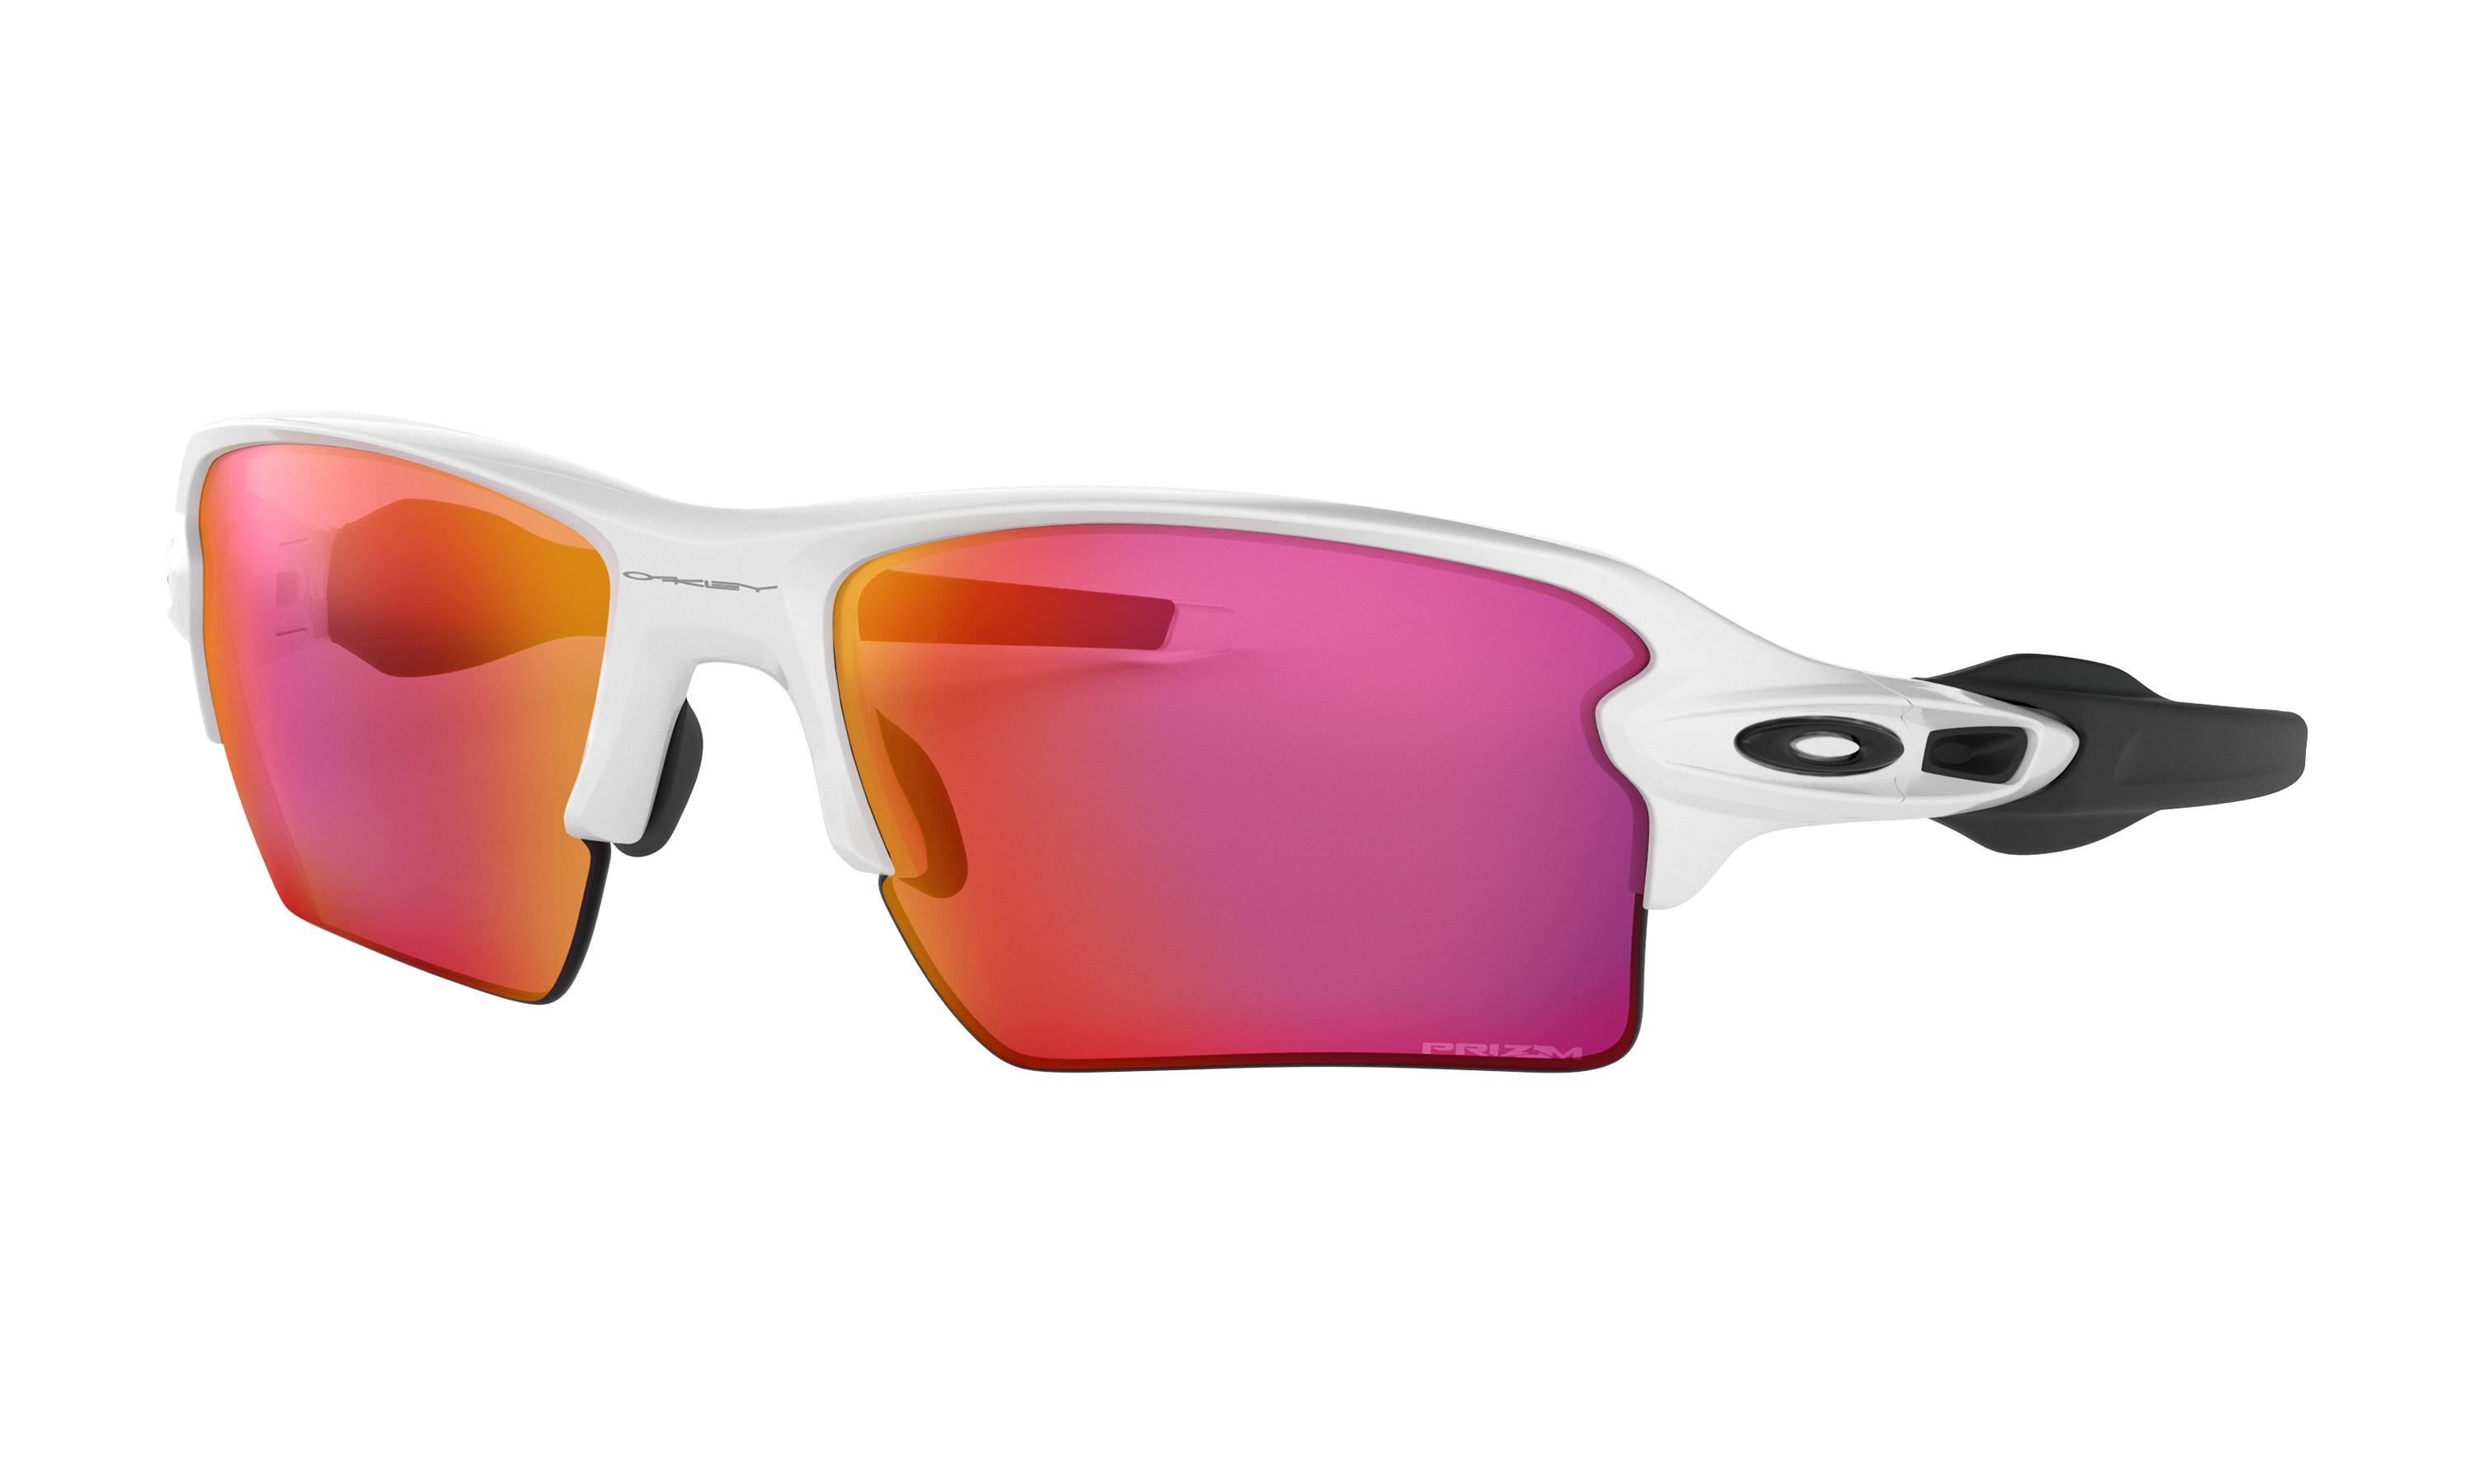 319314df4a Oakley® Flak 2.0 XL - PRIZM Prescription Available